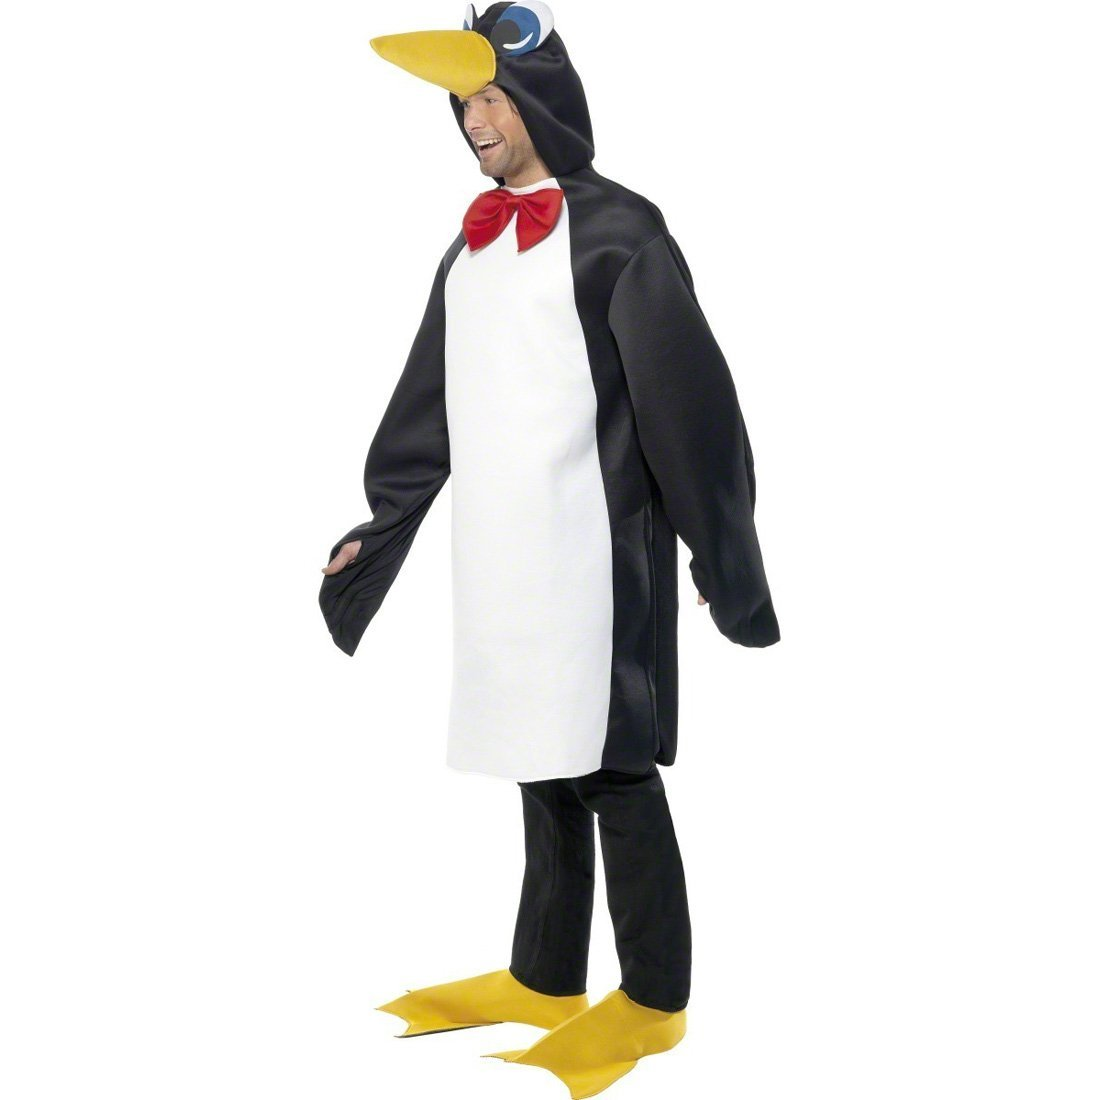 Disfraz de pingüino traje animal carnaval: Amazon.es ...